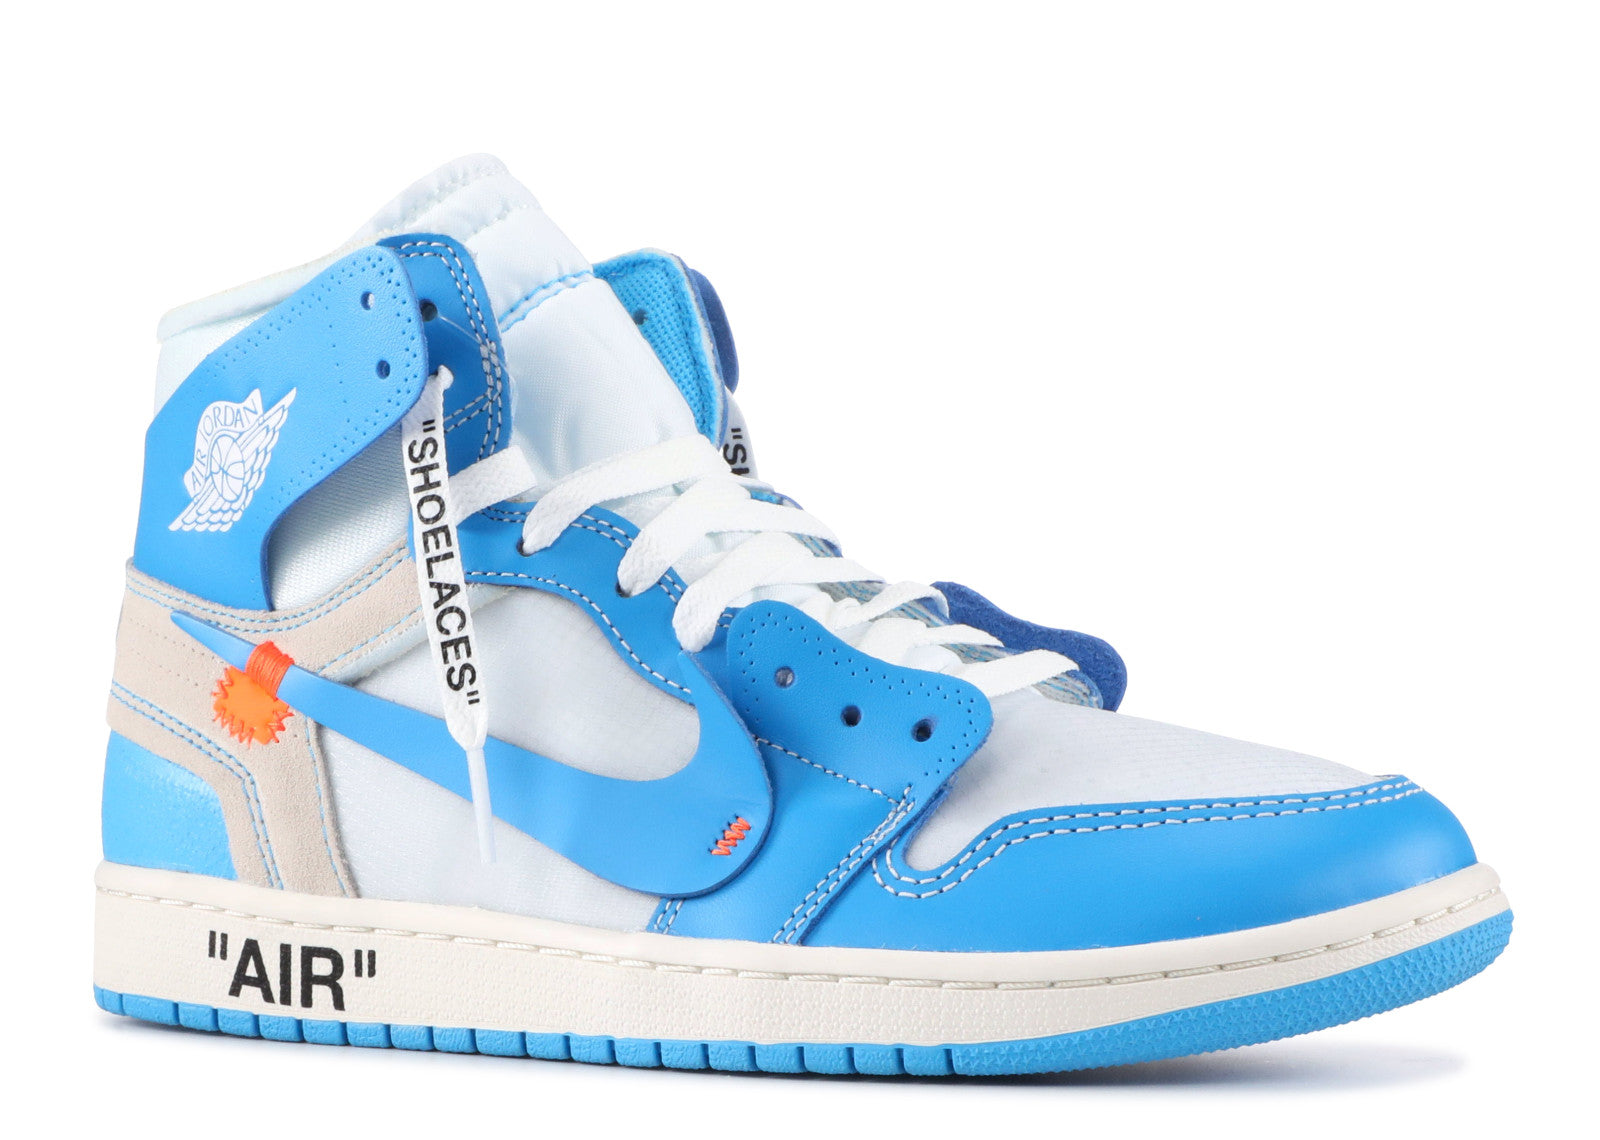 53725e2c648e6e Nike x OFF-WHITE Air Jordan 1